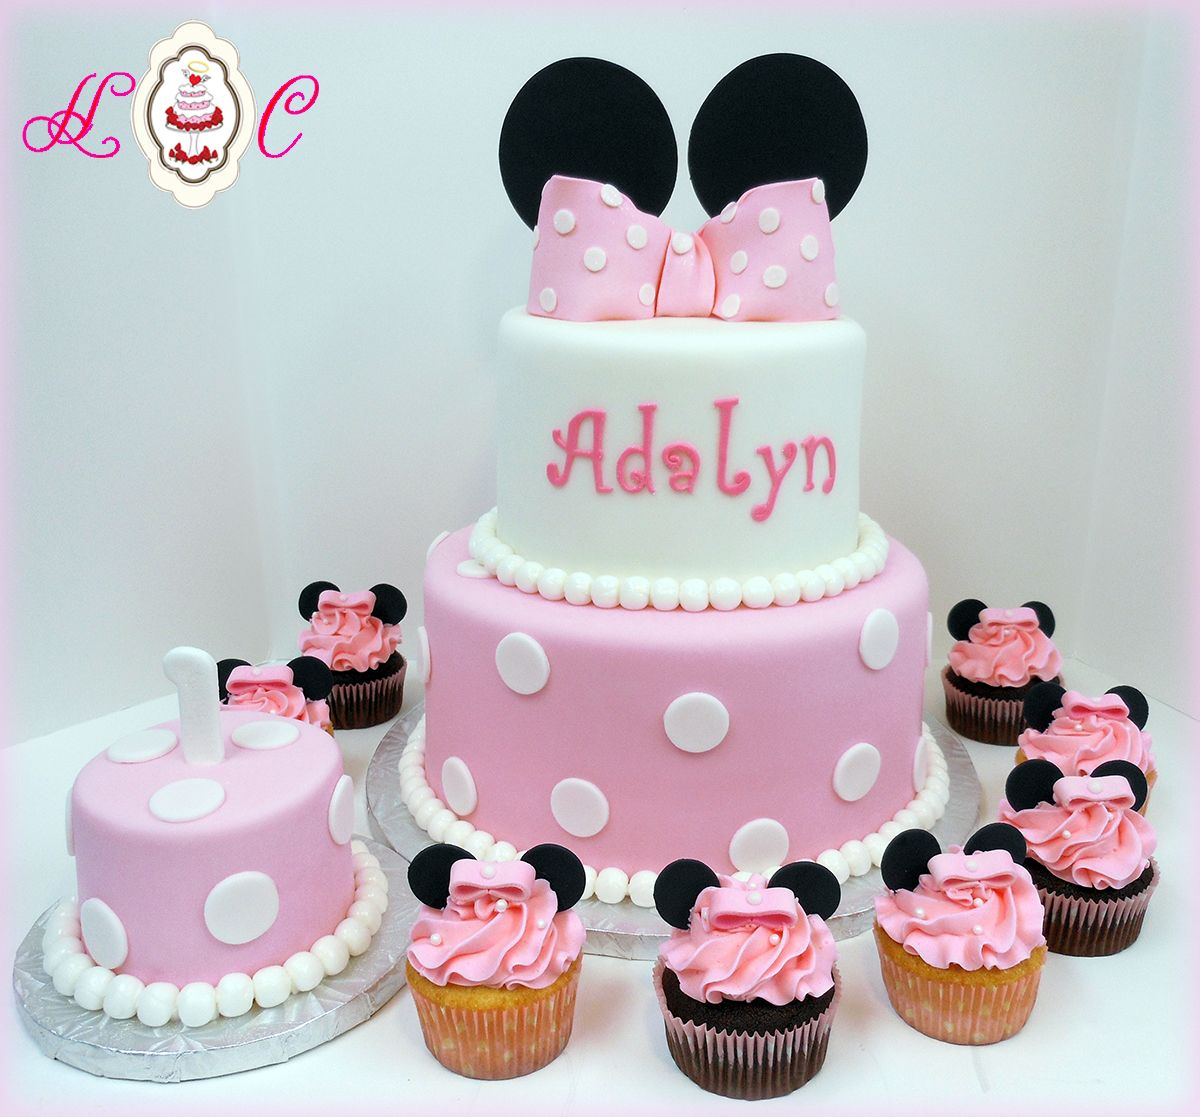 Free Download Confections Cakes Creations Mickey Mouse